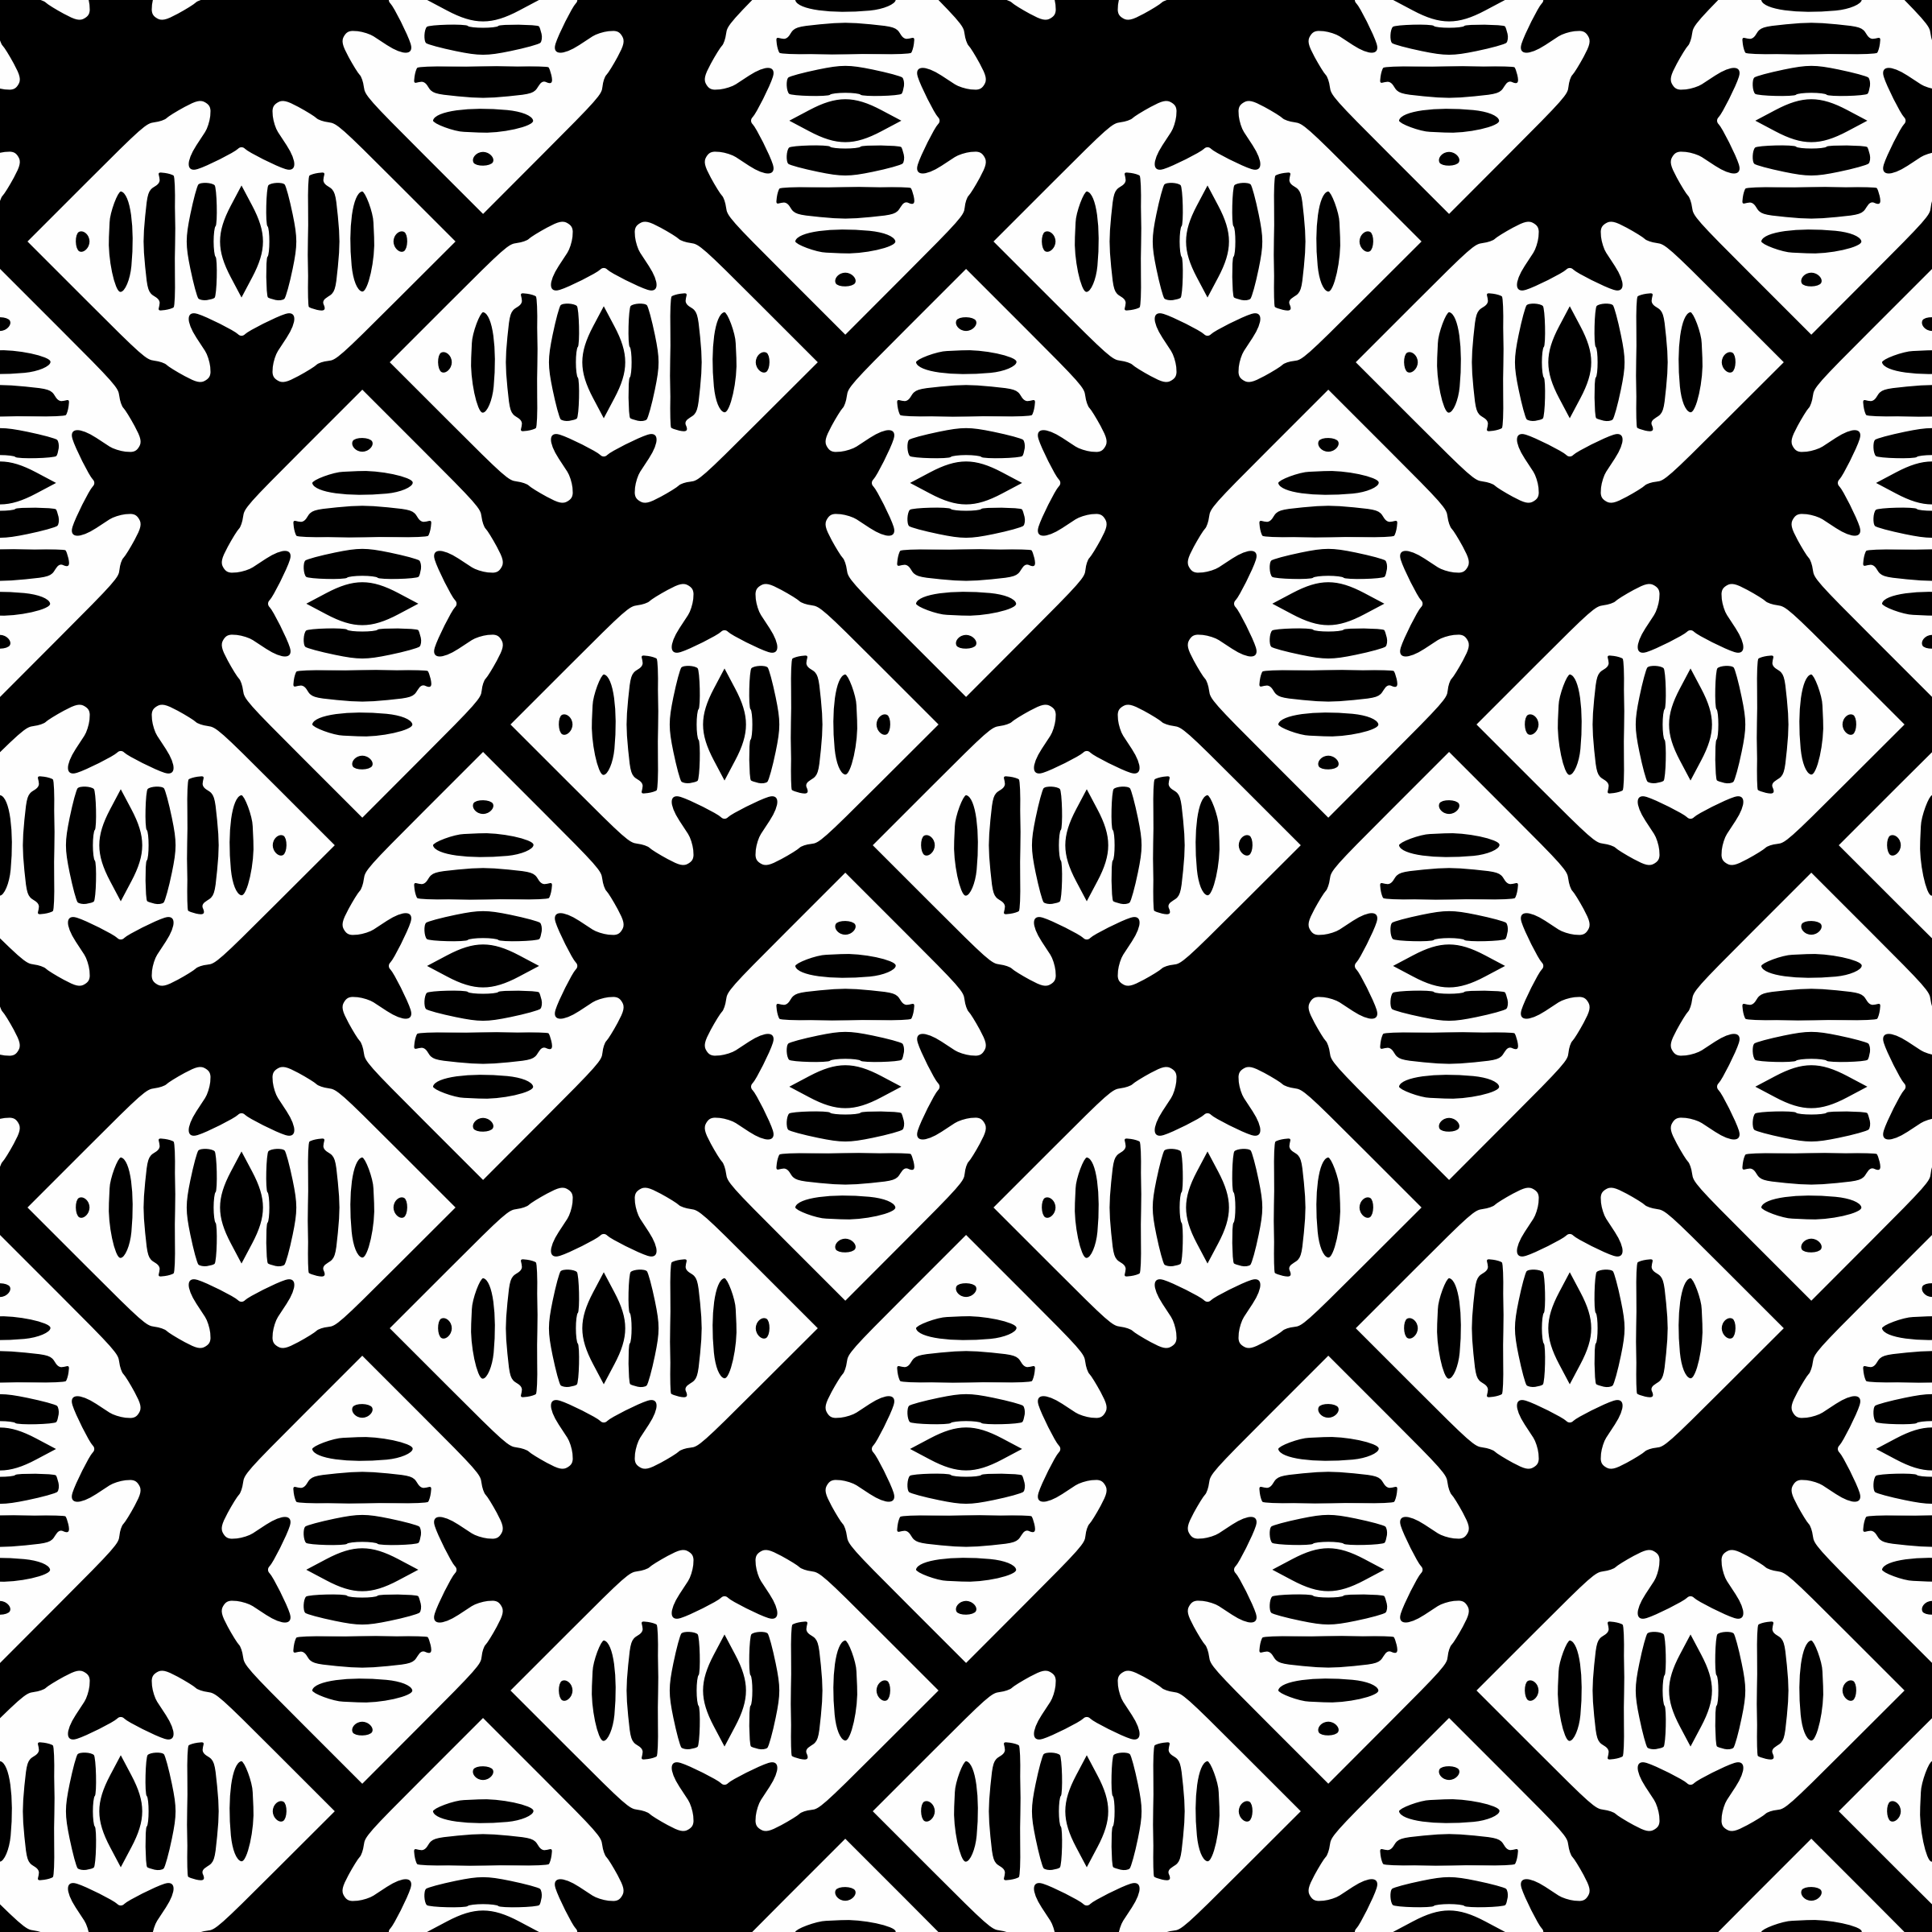 Background pattern 178 by Firkin